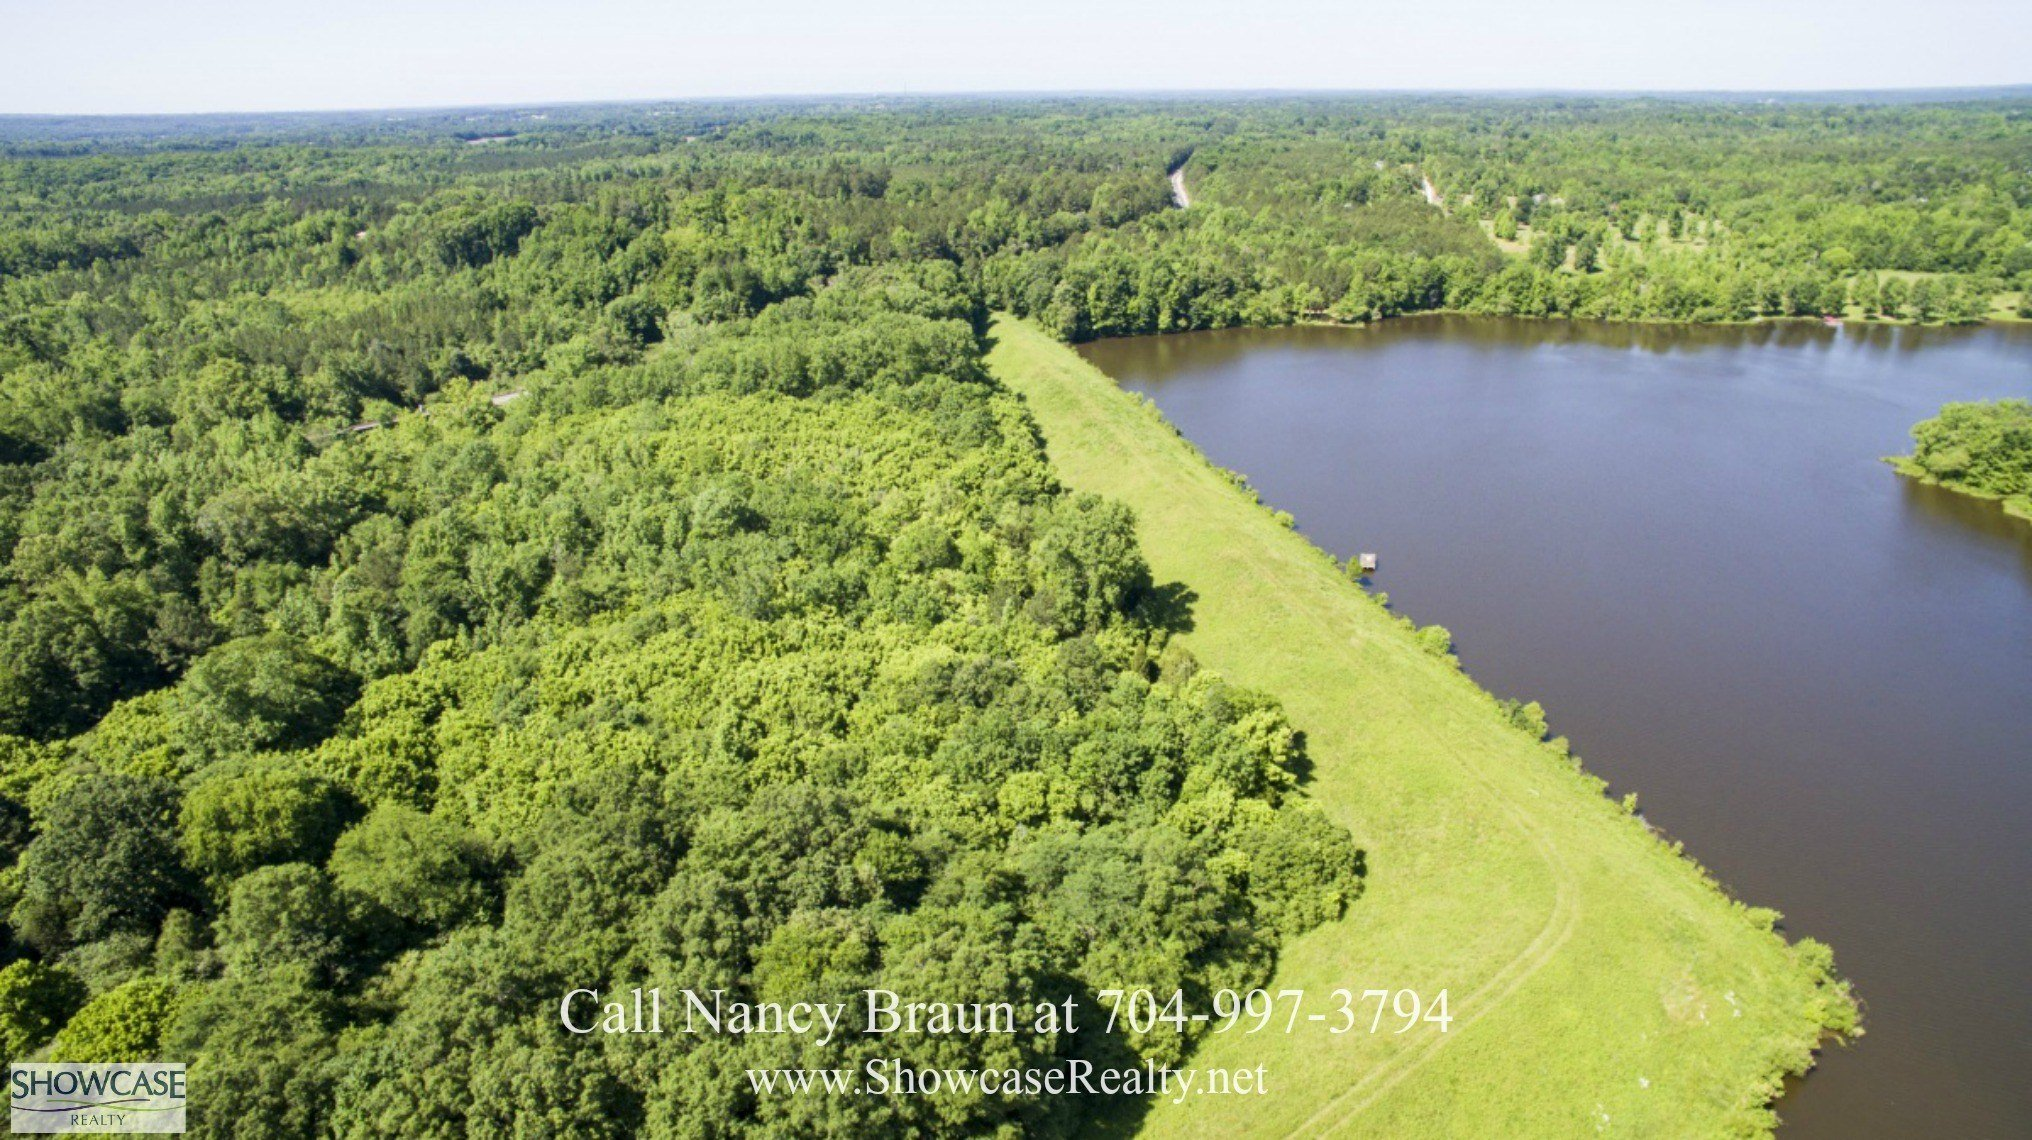 South Carolina Acreage for Sale